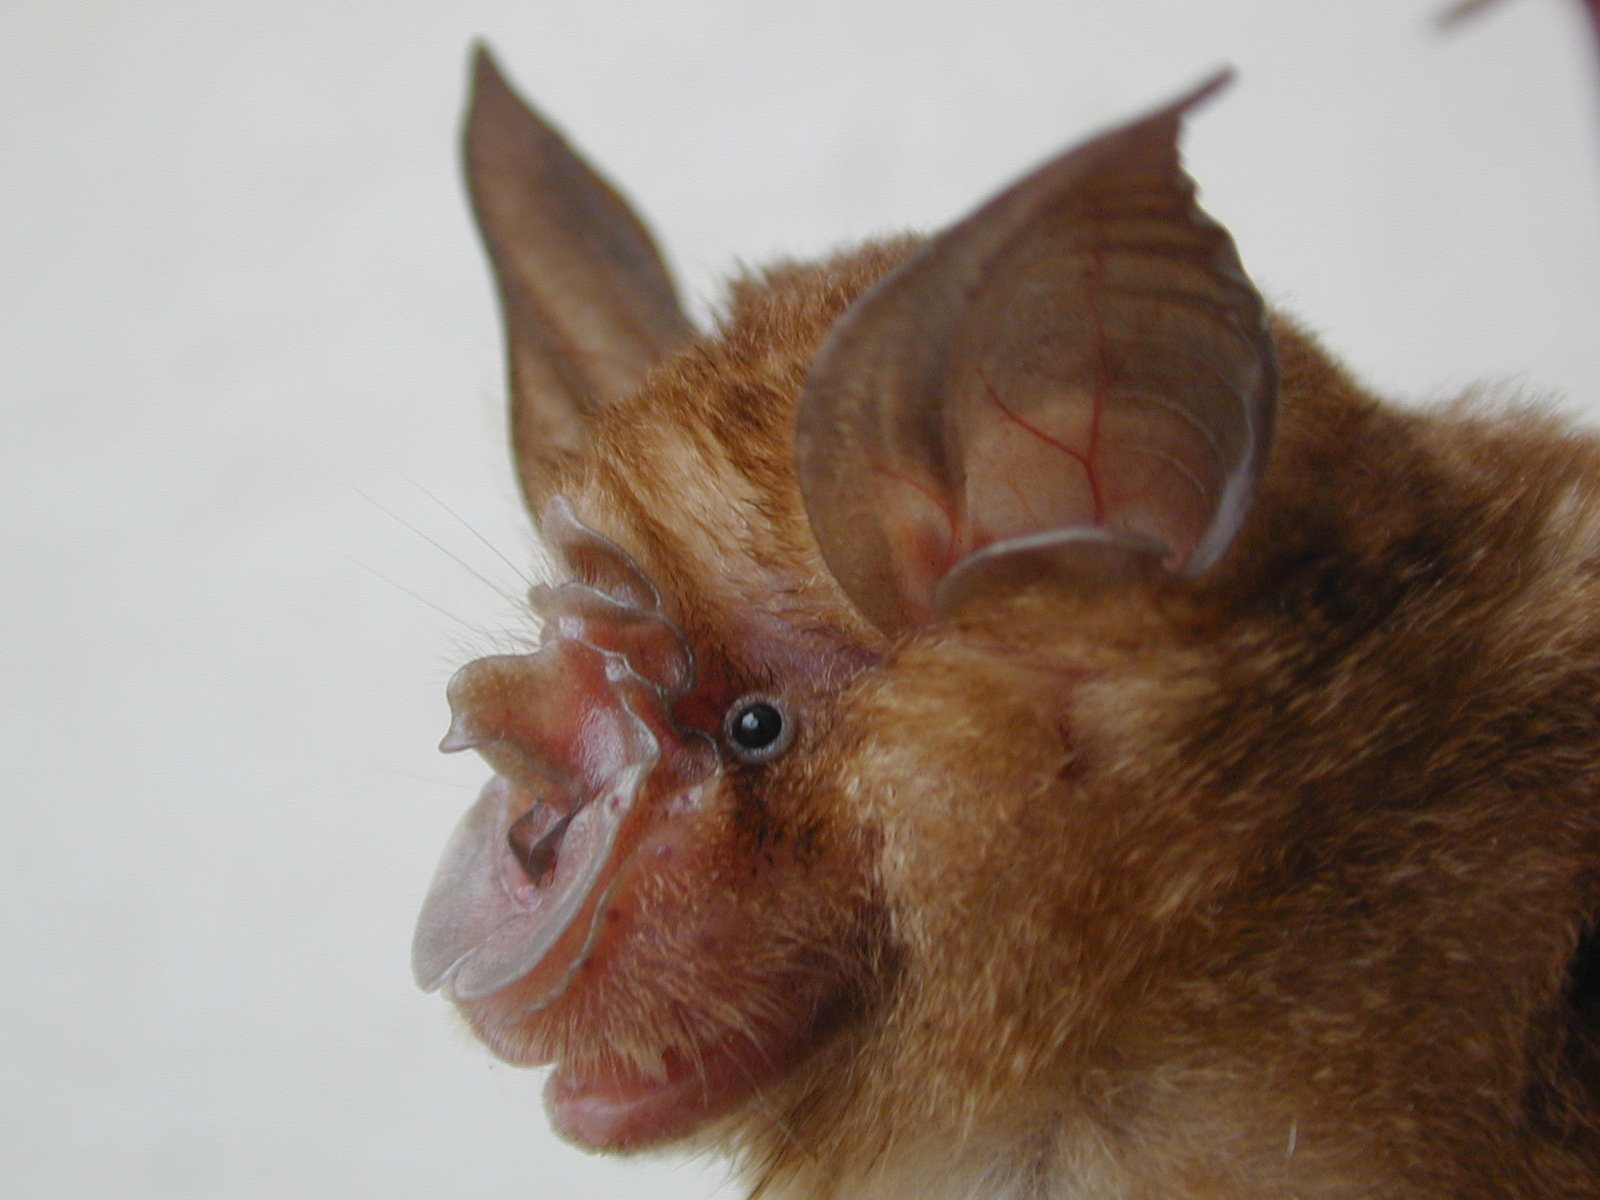 Bat cave study sheds new light on origin of SARS virus